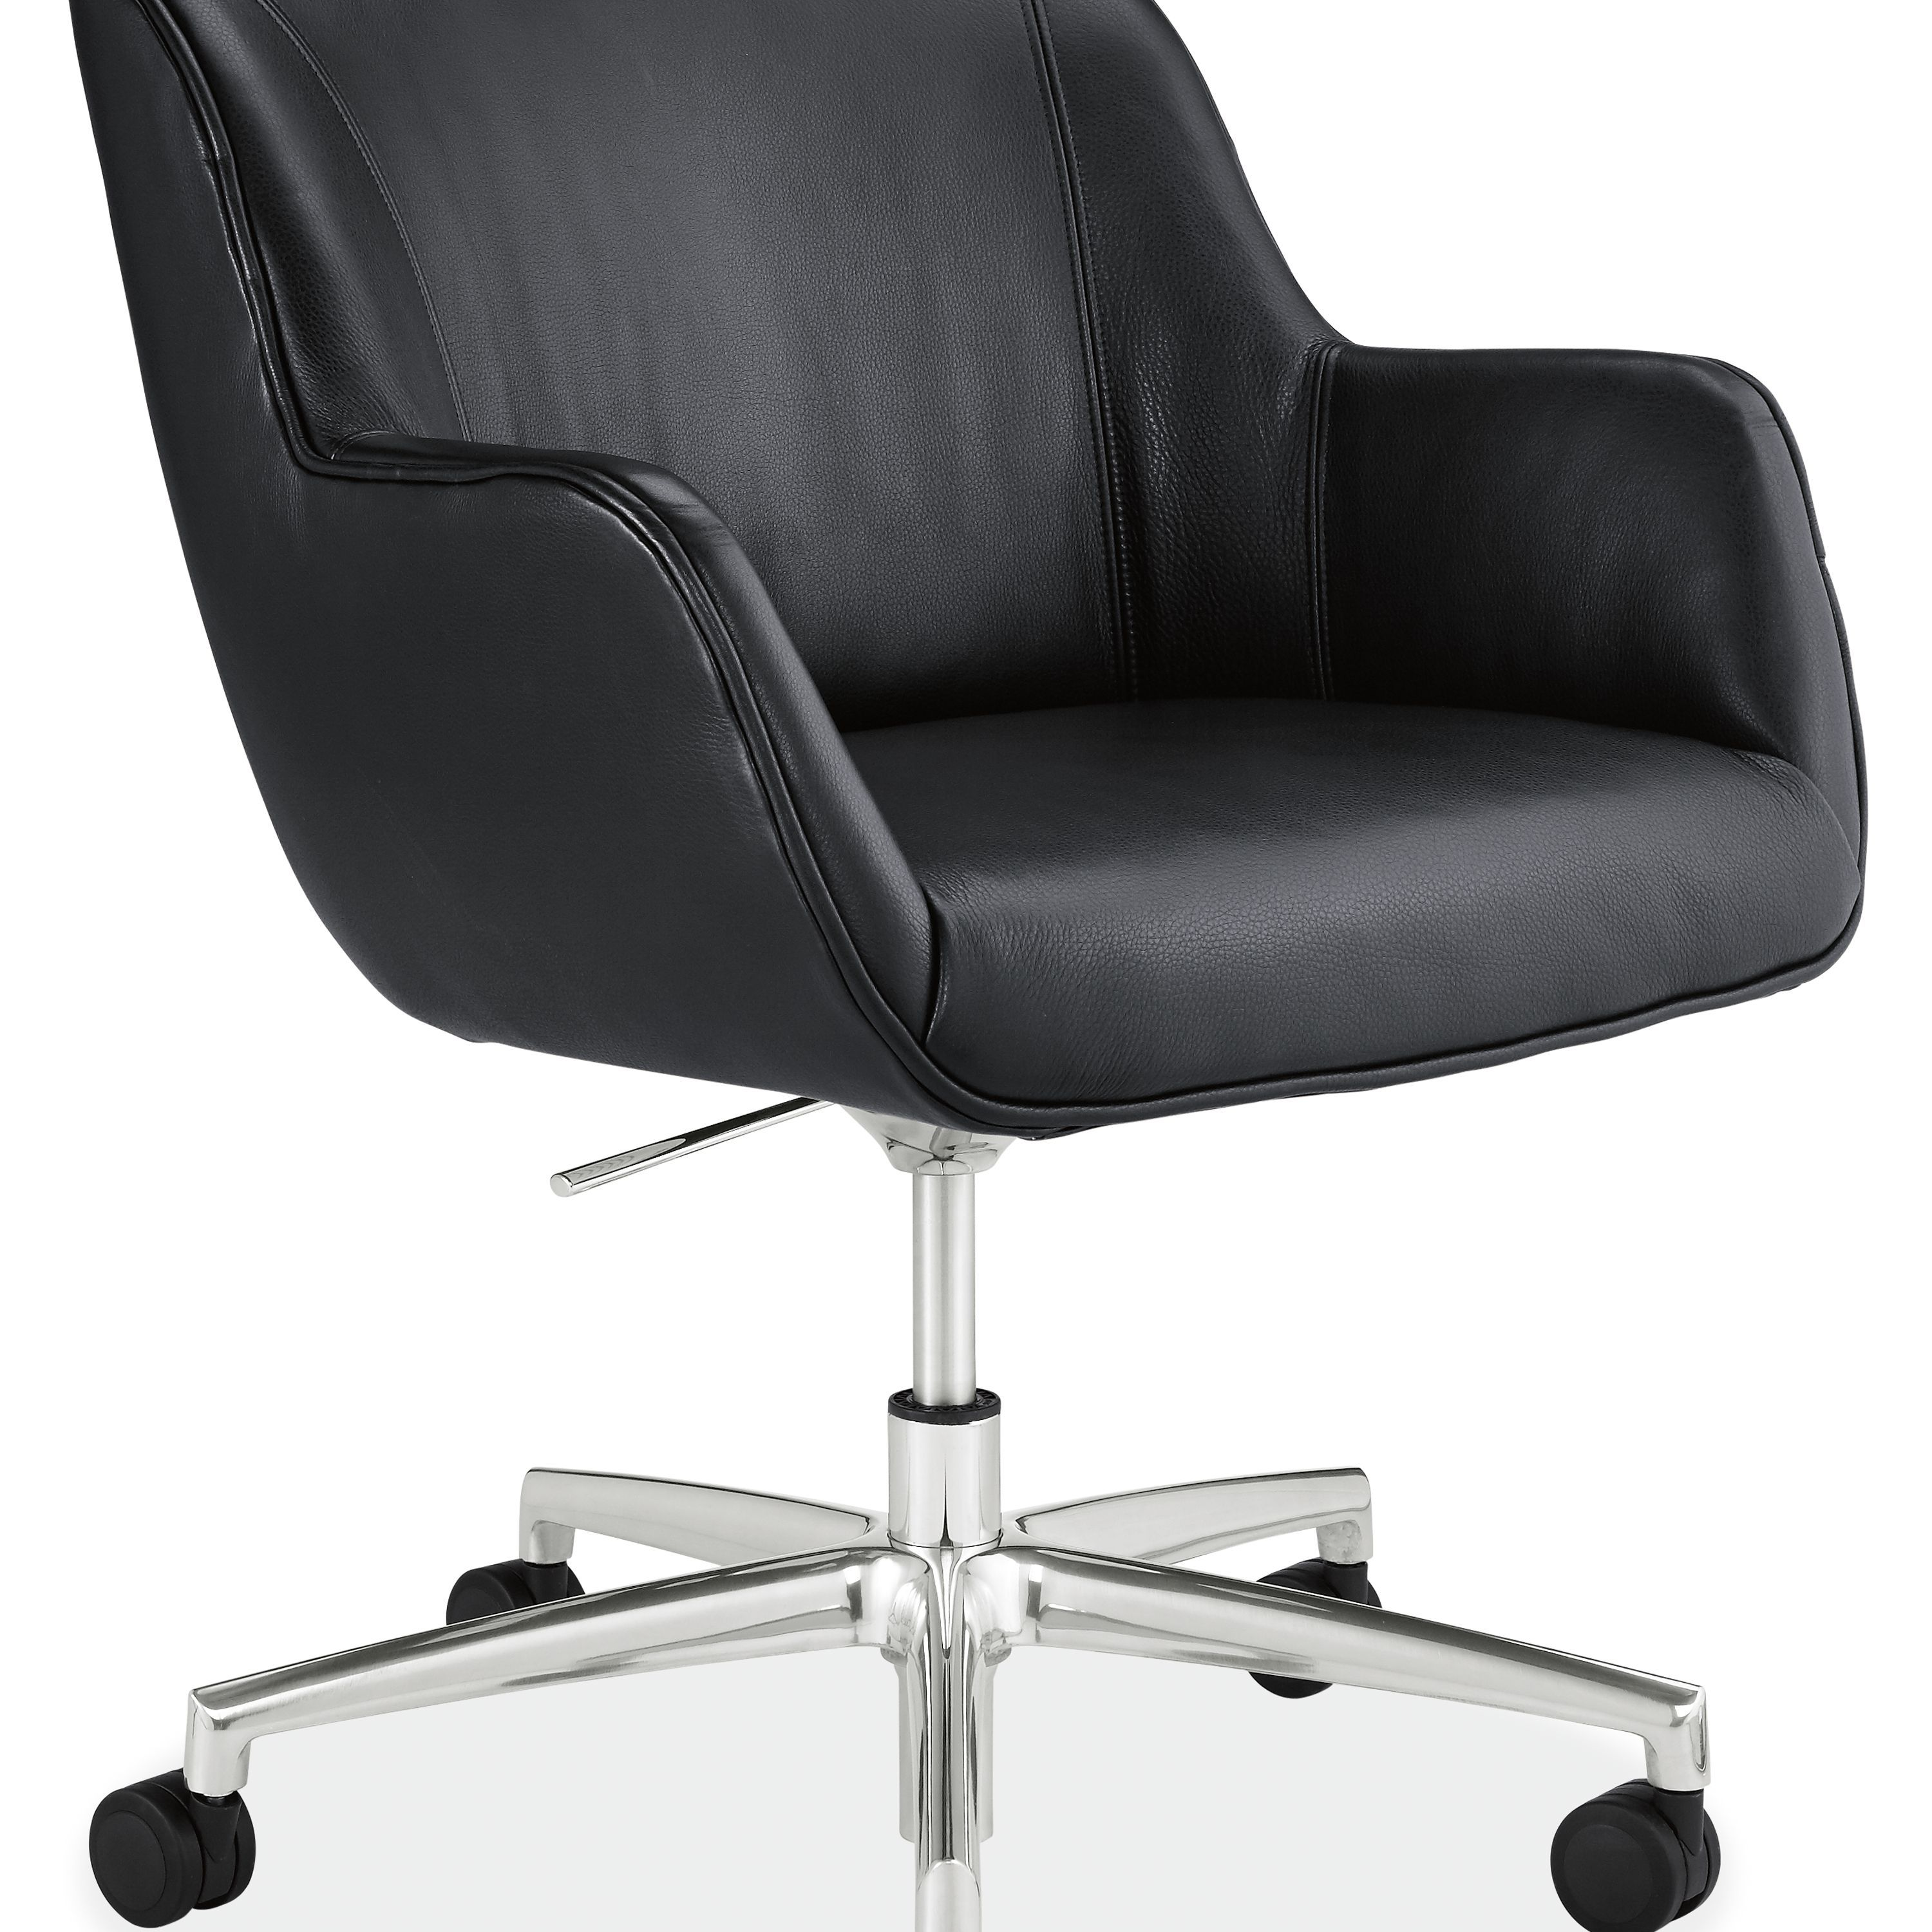 office chair cheap acrylic dining chairs nz nico in leather white room board officechair